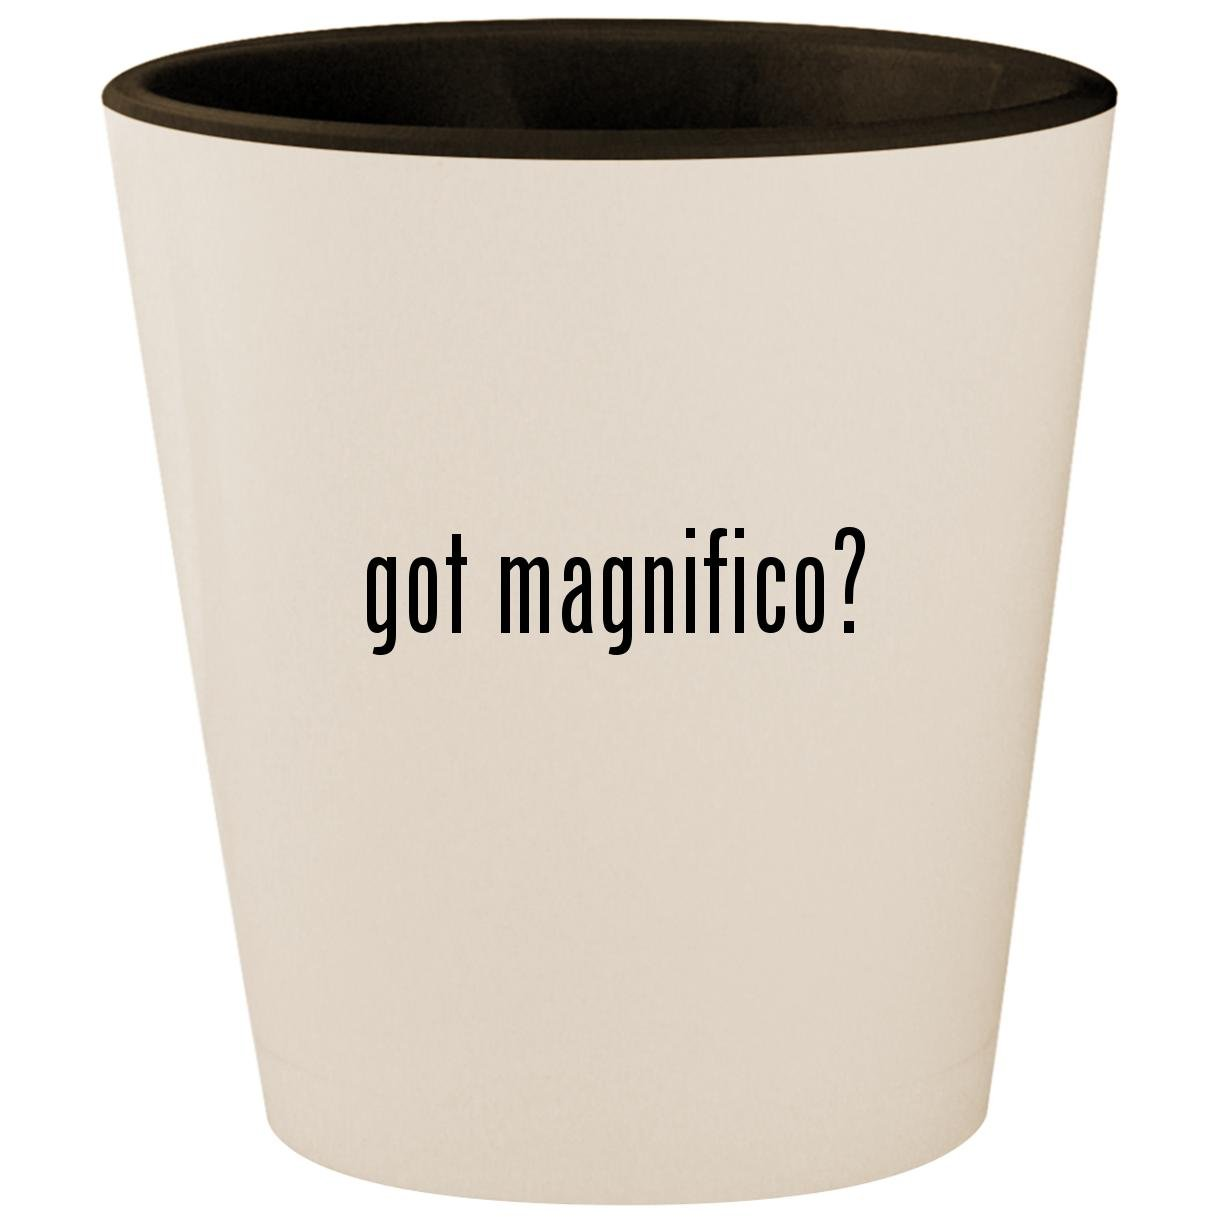 got magnifico? - White Outer & Black Inner Ceramic 1.5oz Shot Glass